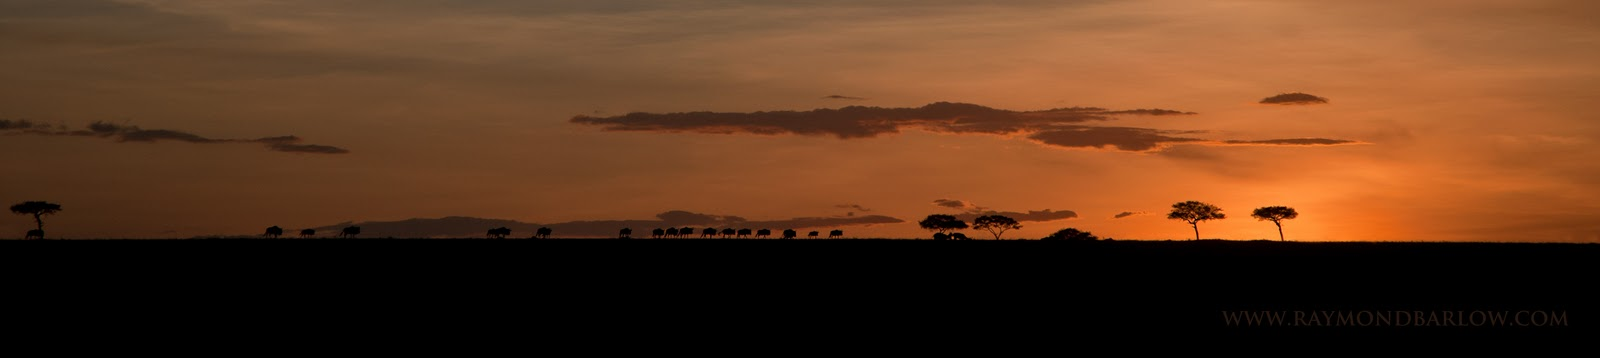 Tanzania Sunset and Wildebeests